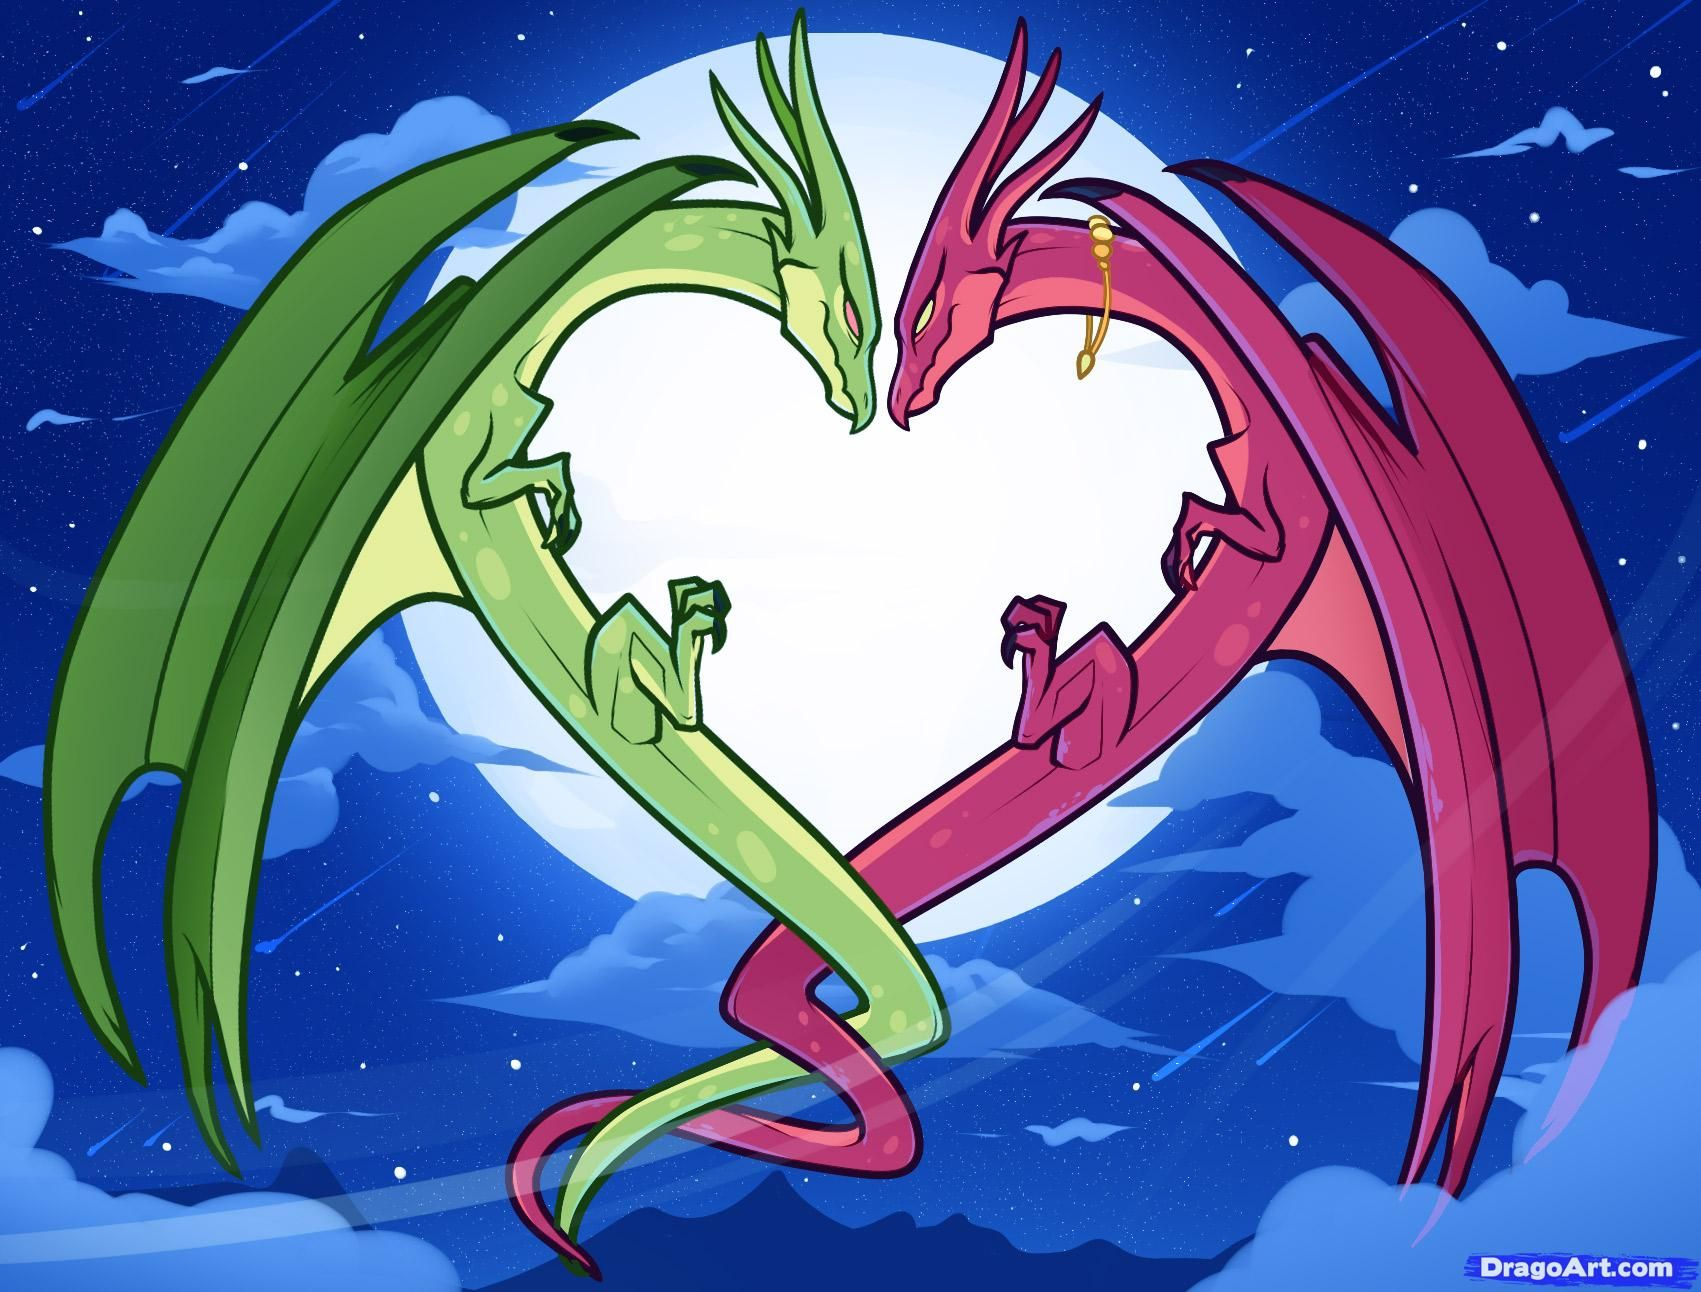 How To Draw Dragon Love, Dragon Love, Step By Step, Dragons, Draw